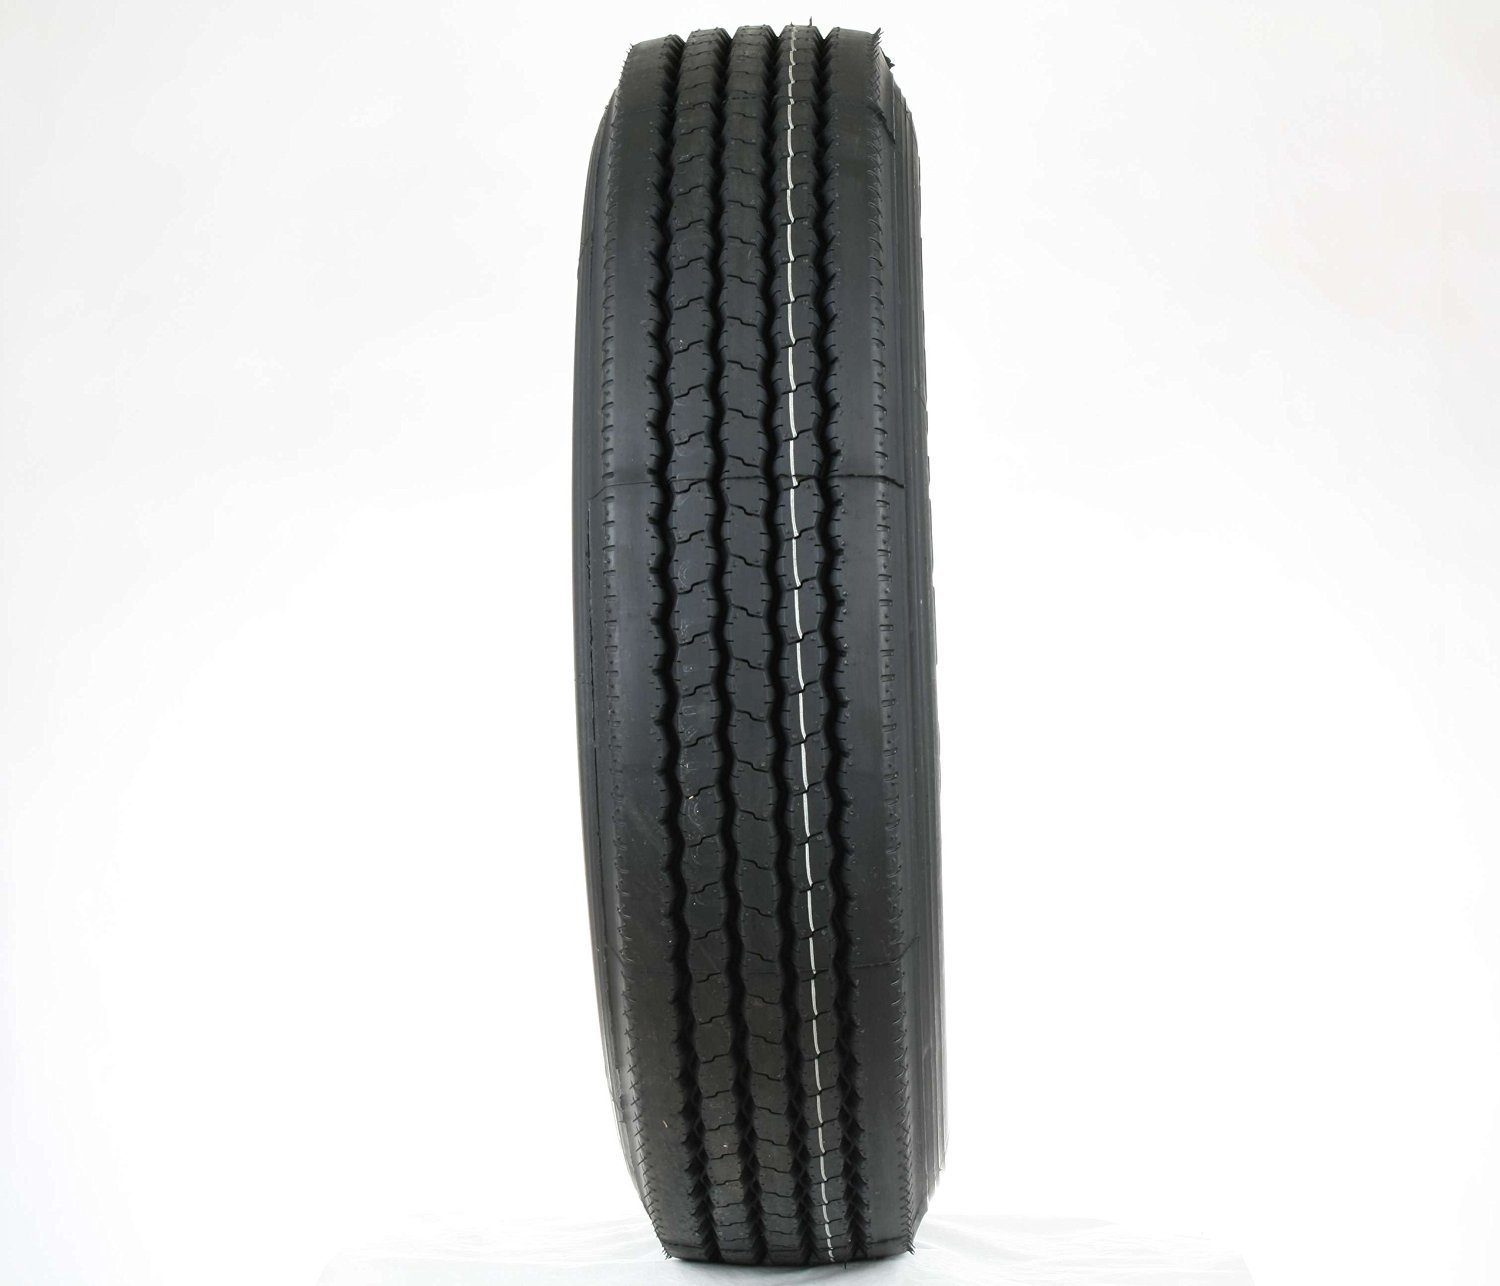 Double Coin RT500 Premium Low Profile All-Position Multi-Use Commercial Radial Truck Tire 1000R15 18 ply